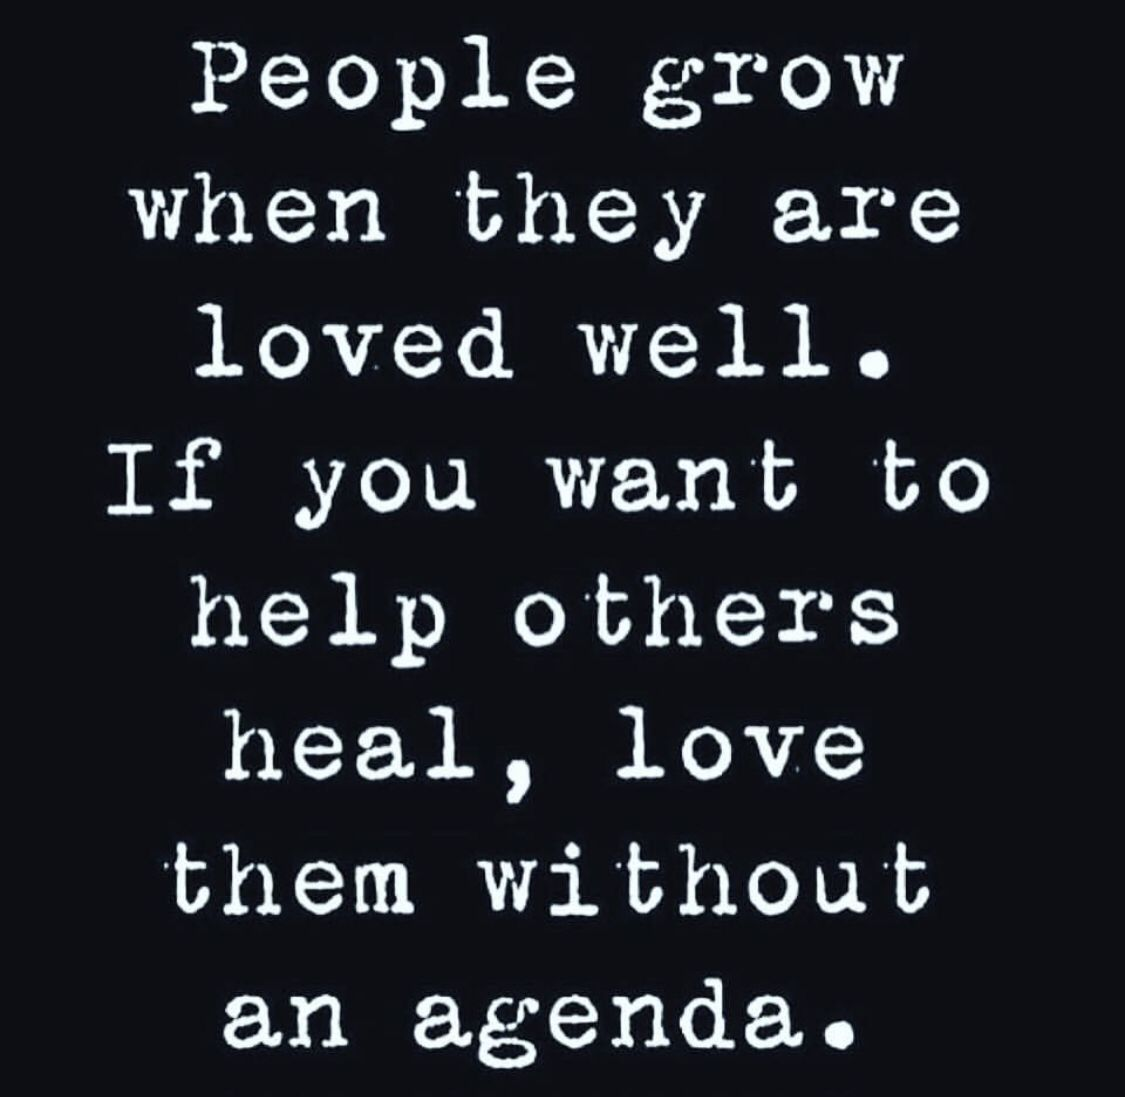 Love produces healing 🙏❤️